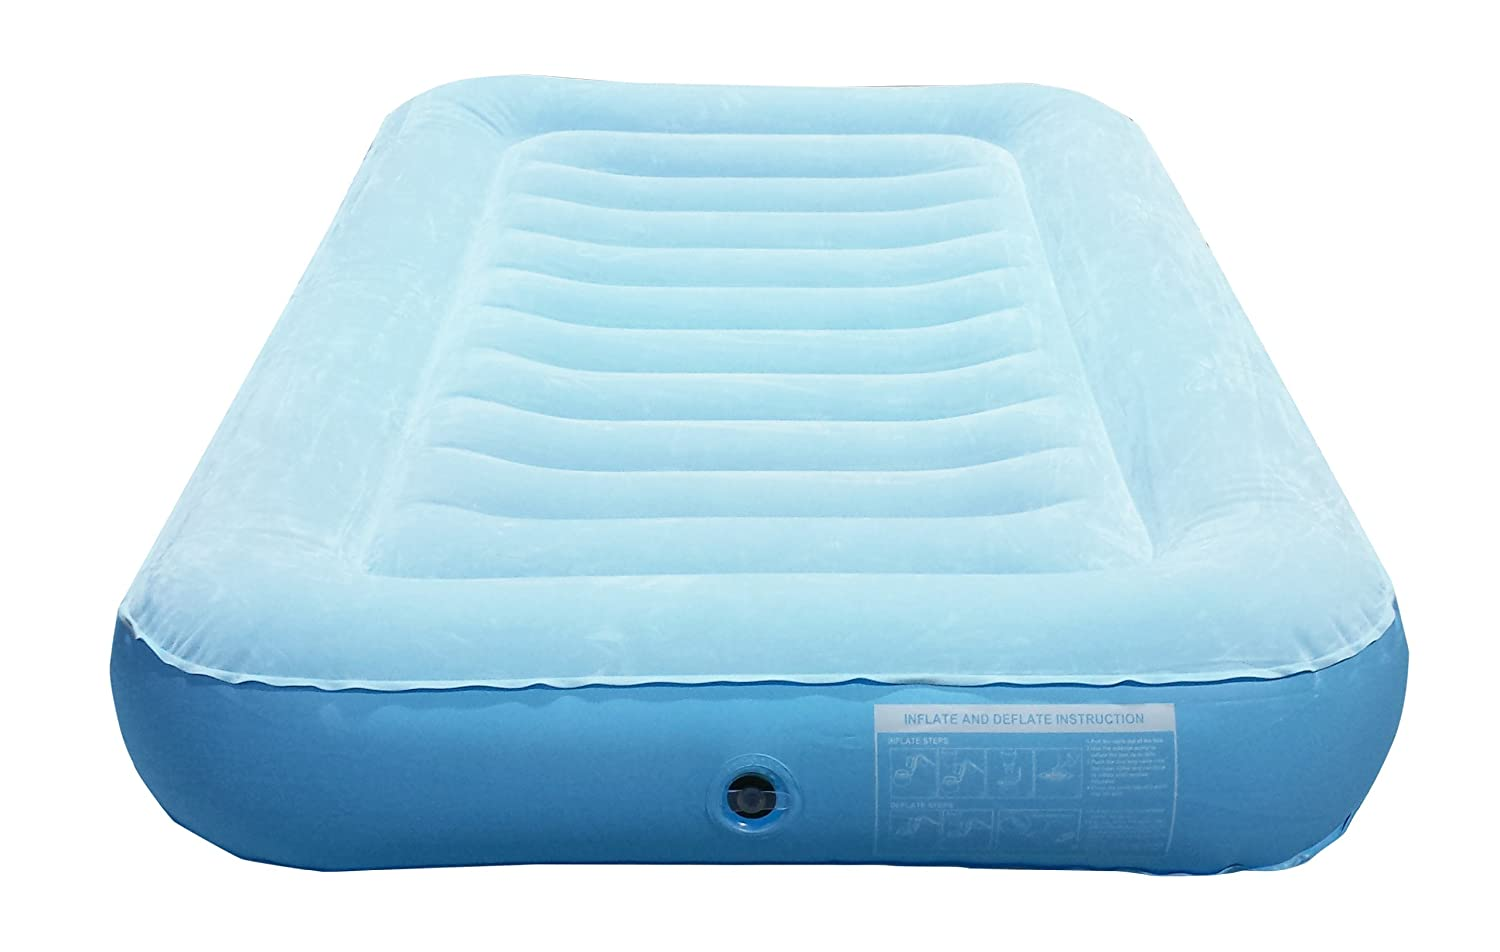 Amazon.com: LazyNap LZ-01K Kids Air Bed with Flock Top for Camping, Nap  Time or Sleepovers (Includes FREE Hand-Held A/C Electric Pump): Sports &  Outdoors